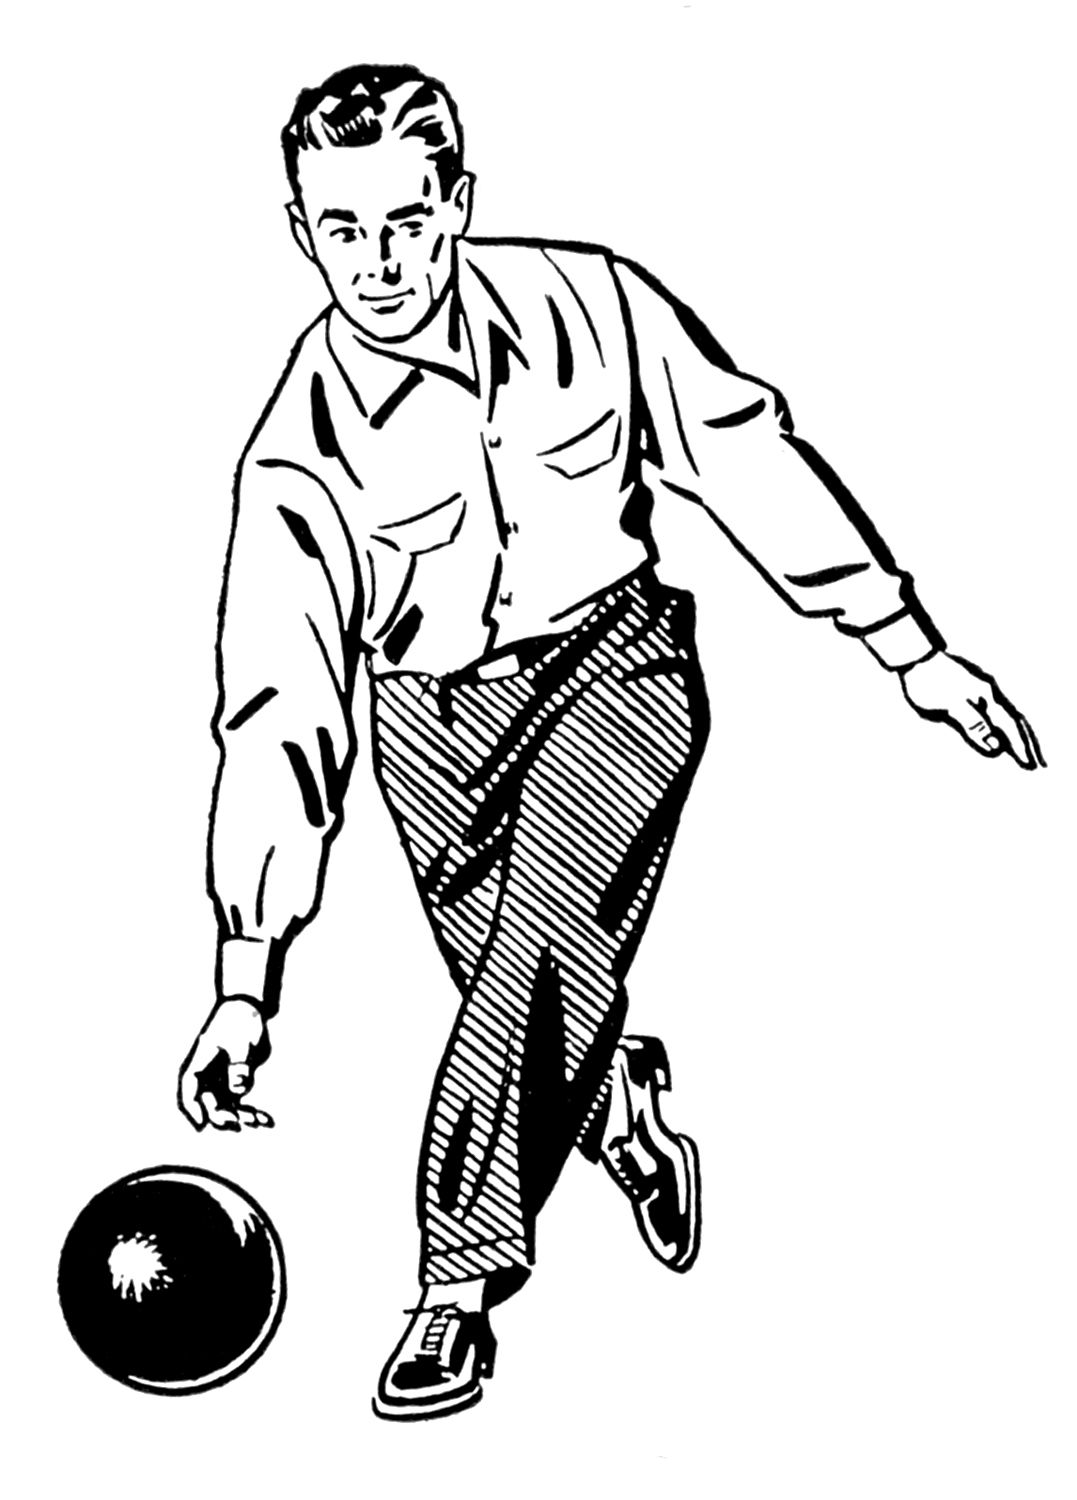 Bowling Clipart Skittles Bowling Skittles Transparent